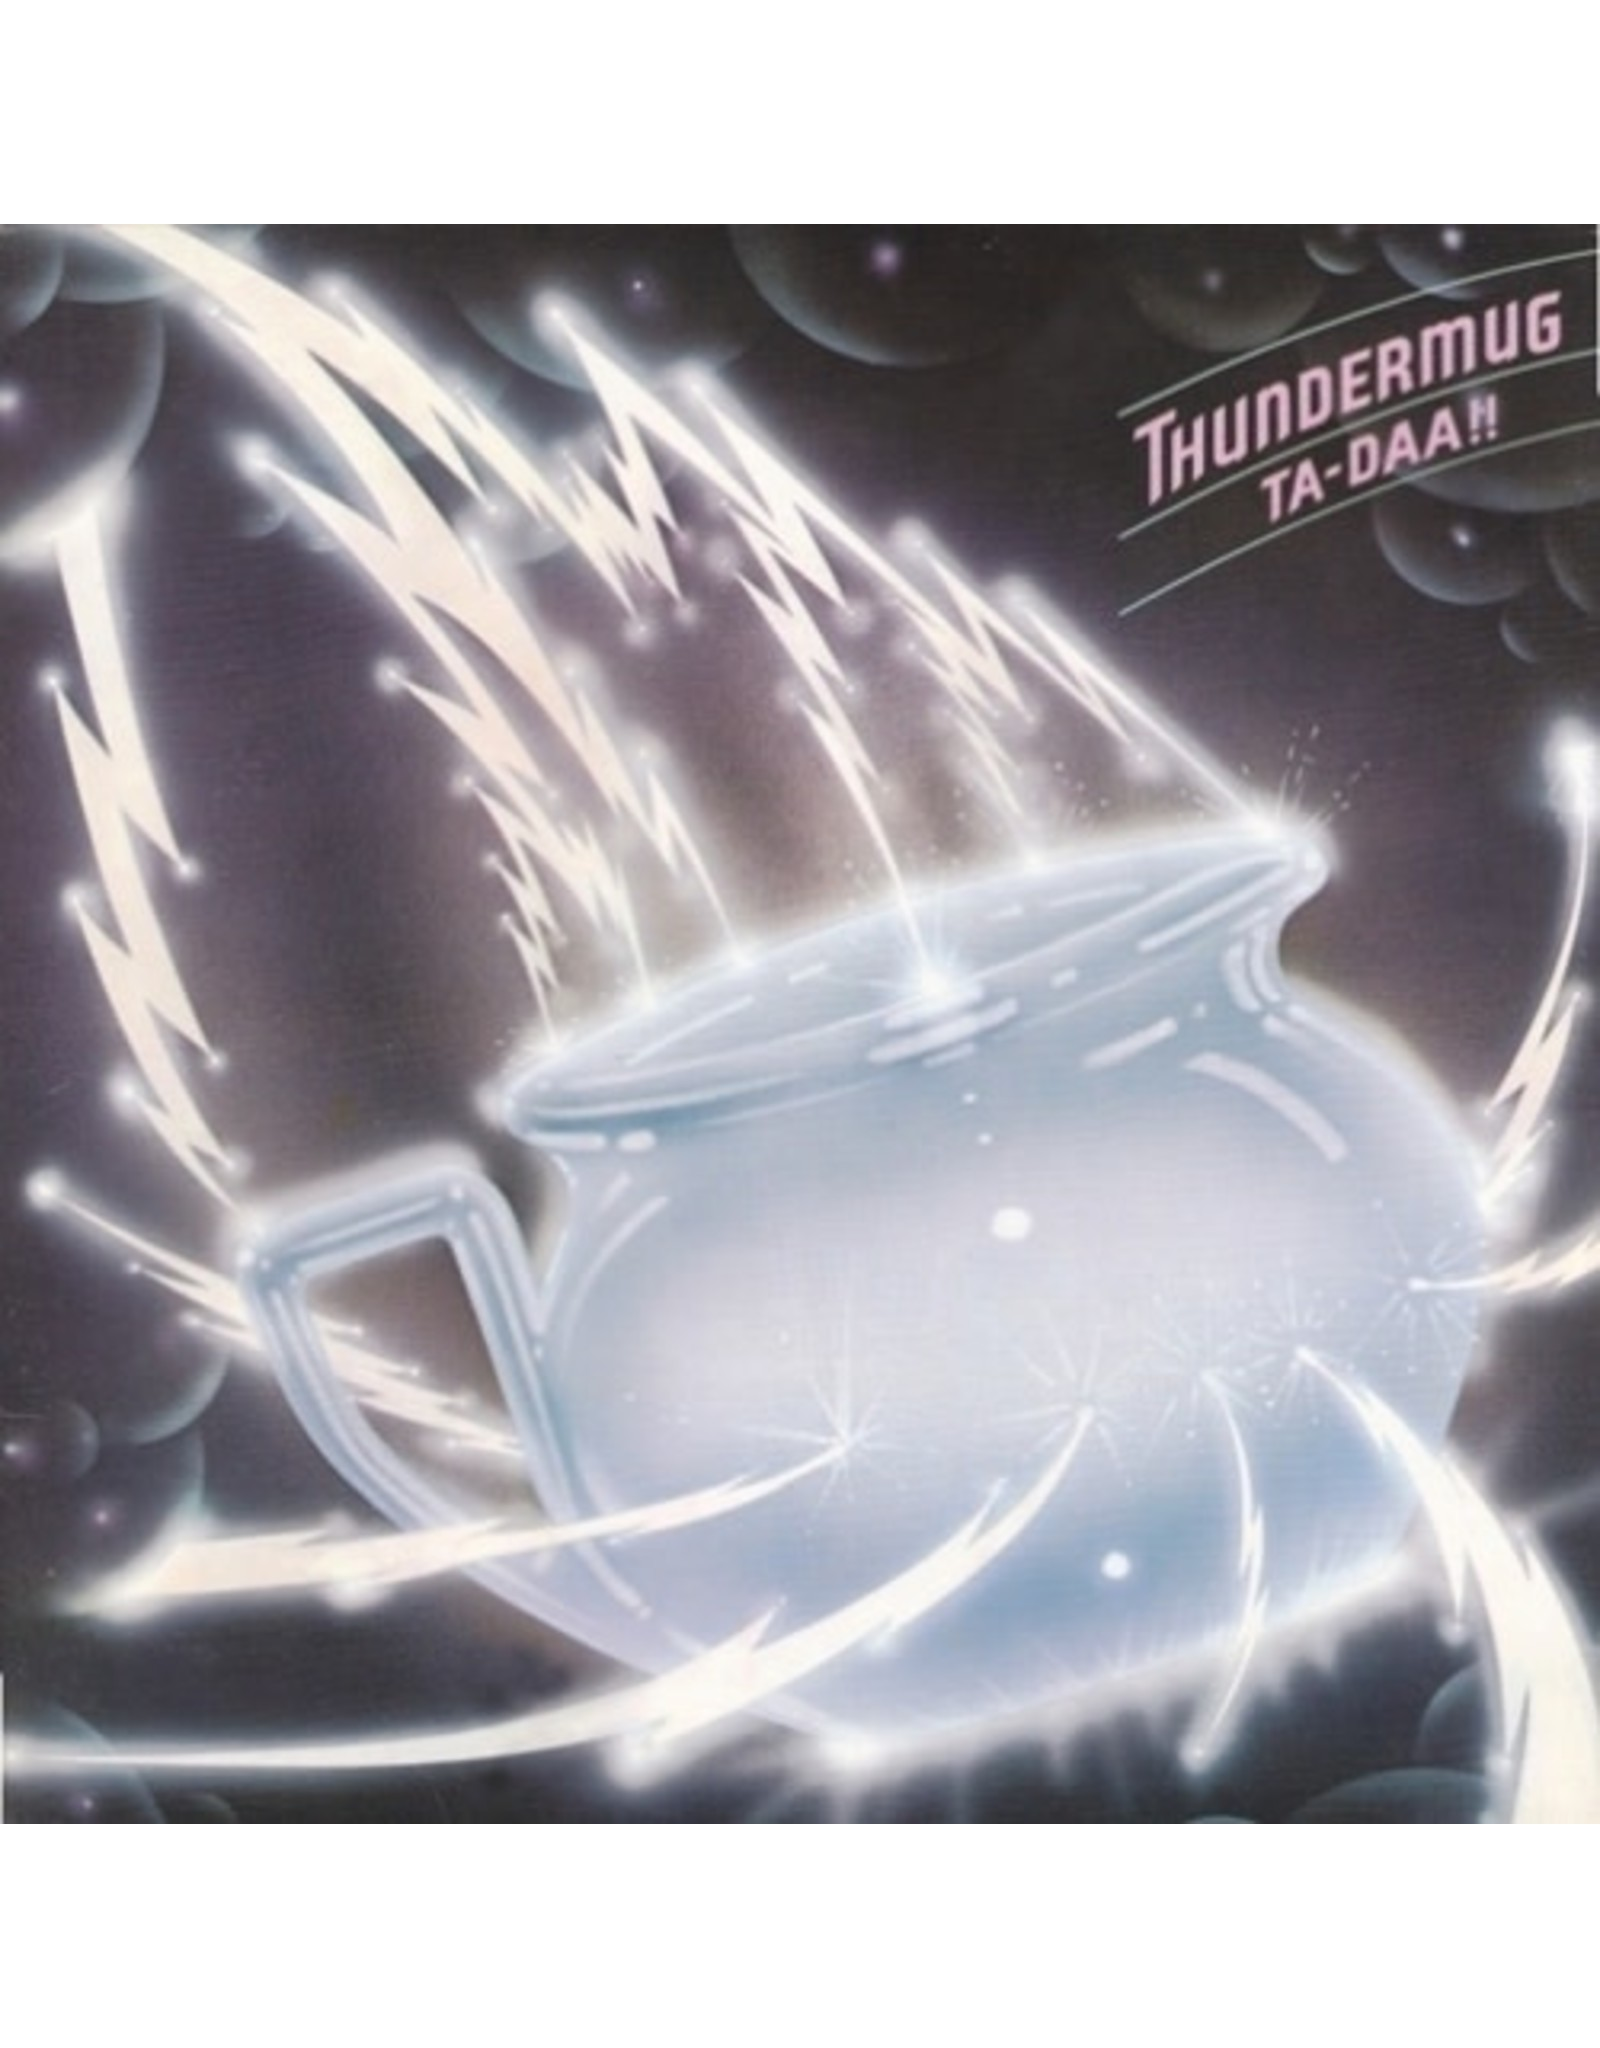 Thundermug - Ta-Daa!! CD